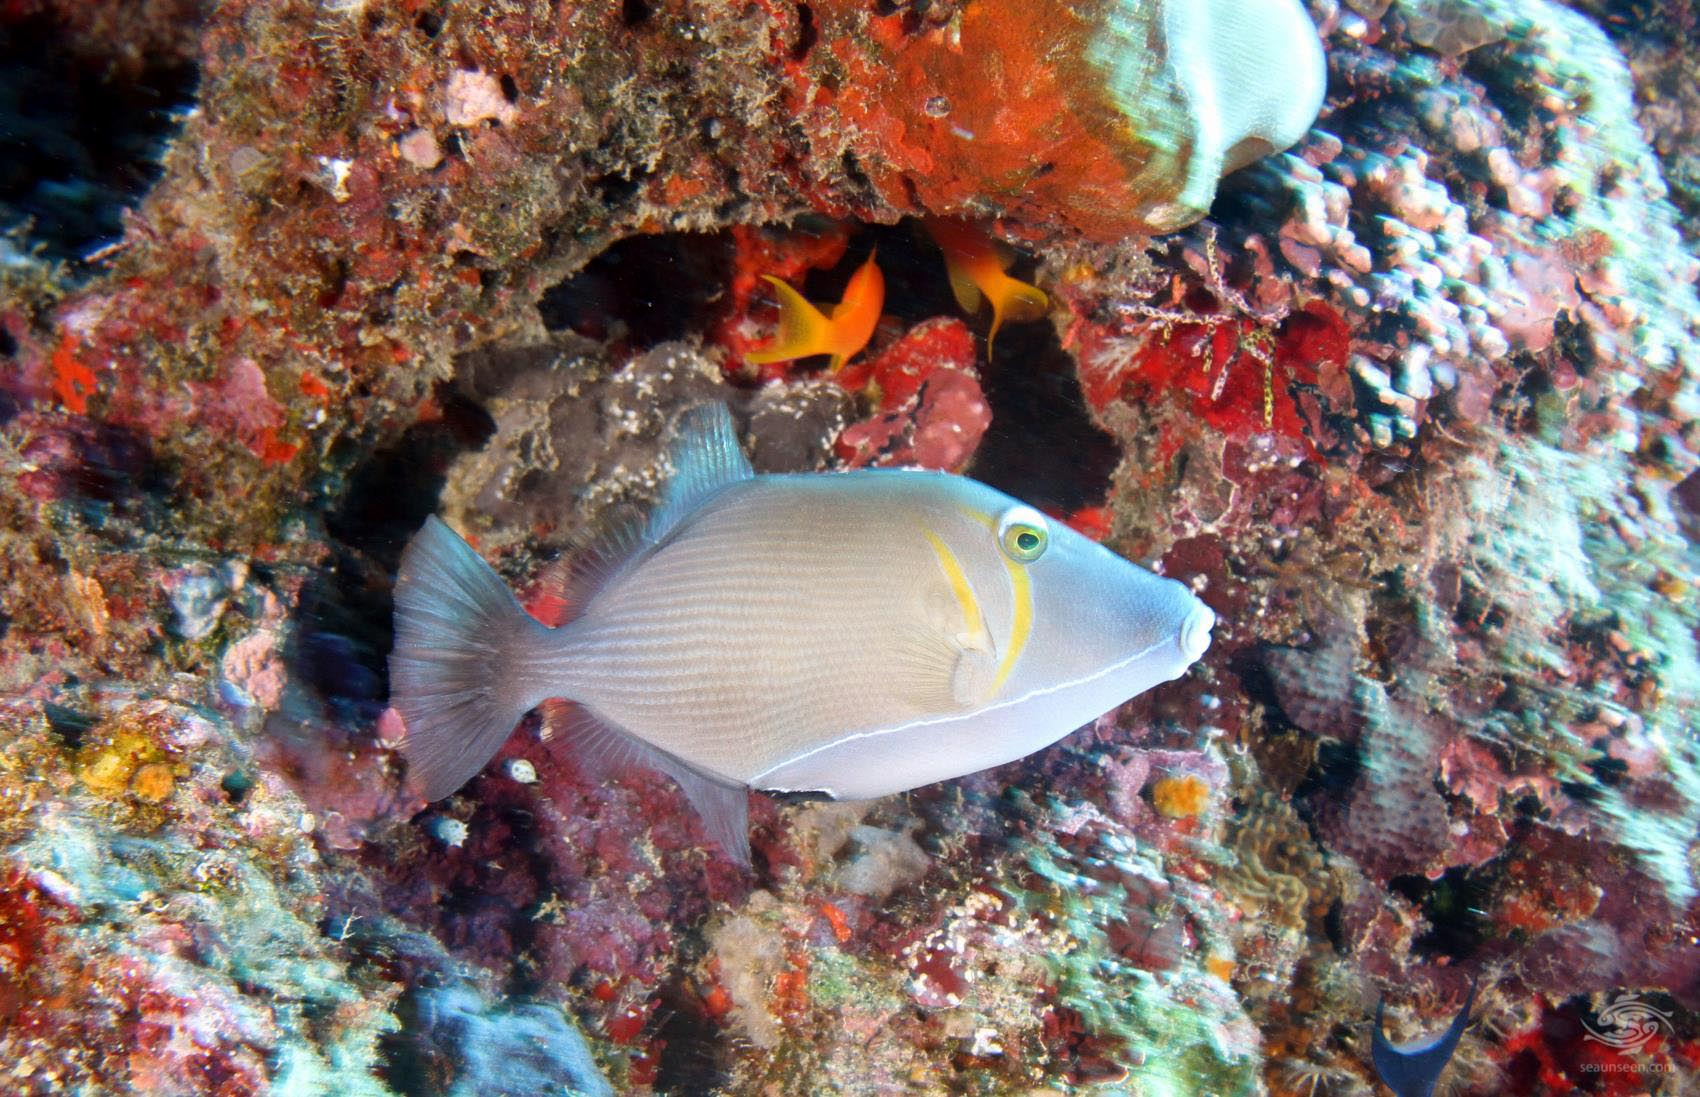 A trigger fish off Dindini wall-Mafia Island dive sites